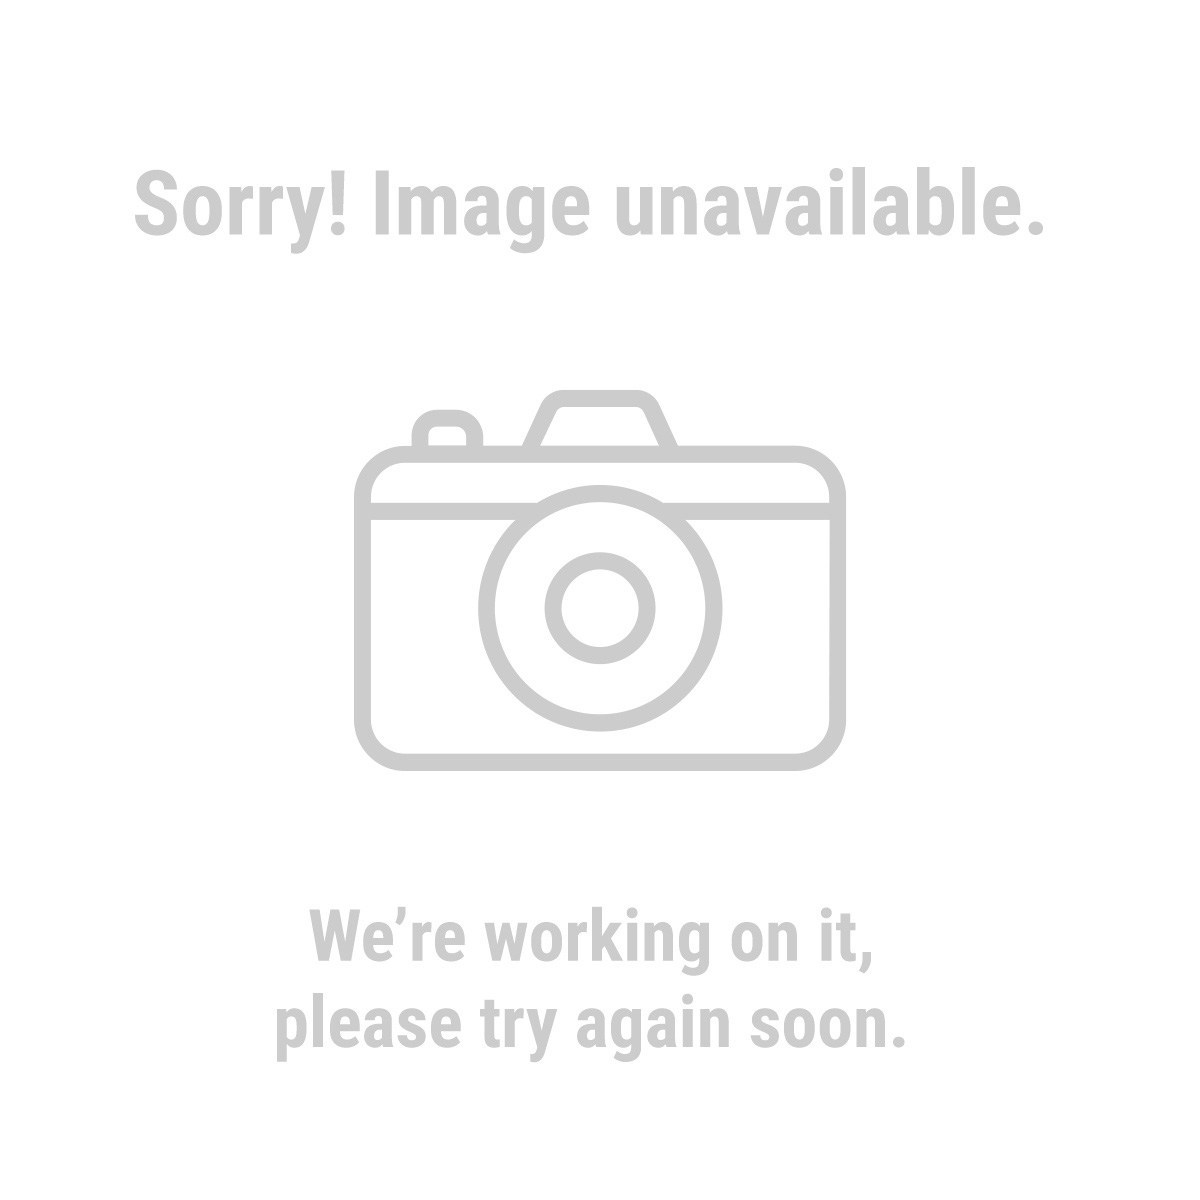 Storehouse 67539 100 Piece Extra Long Cotter Pin Assortment